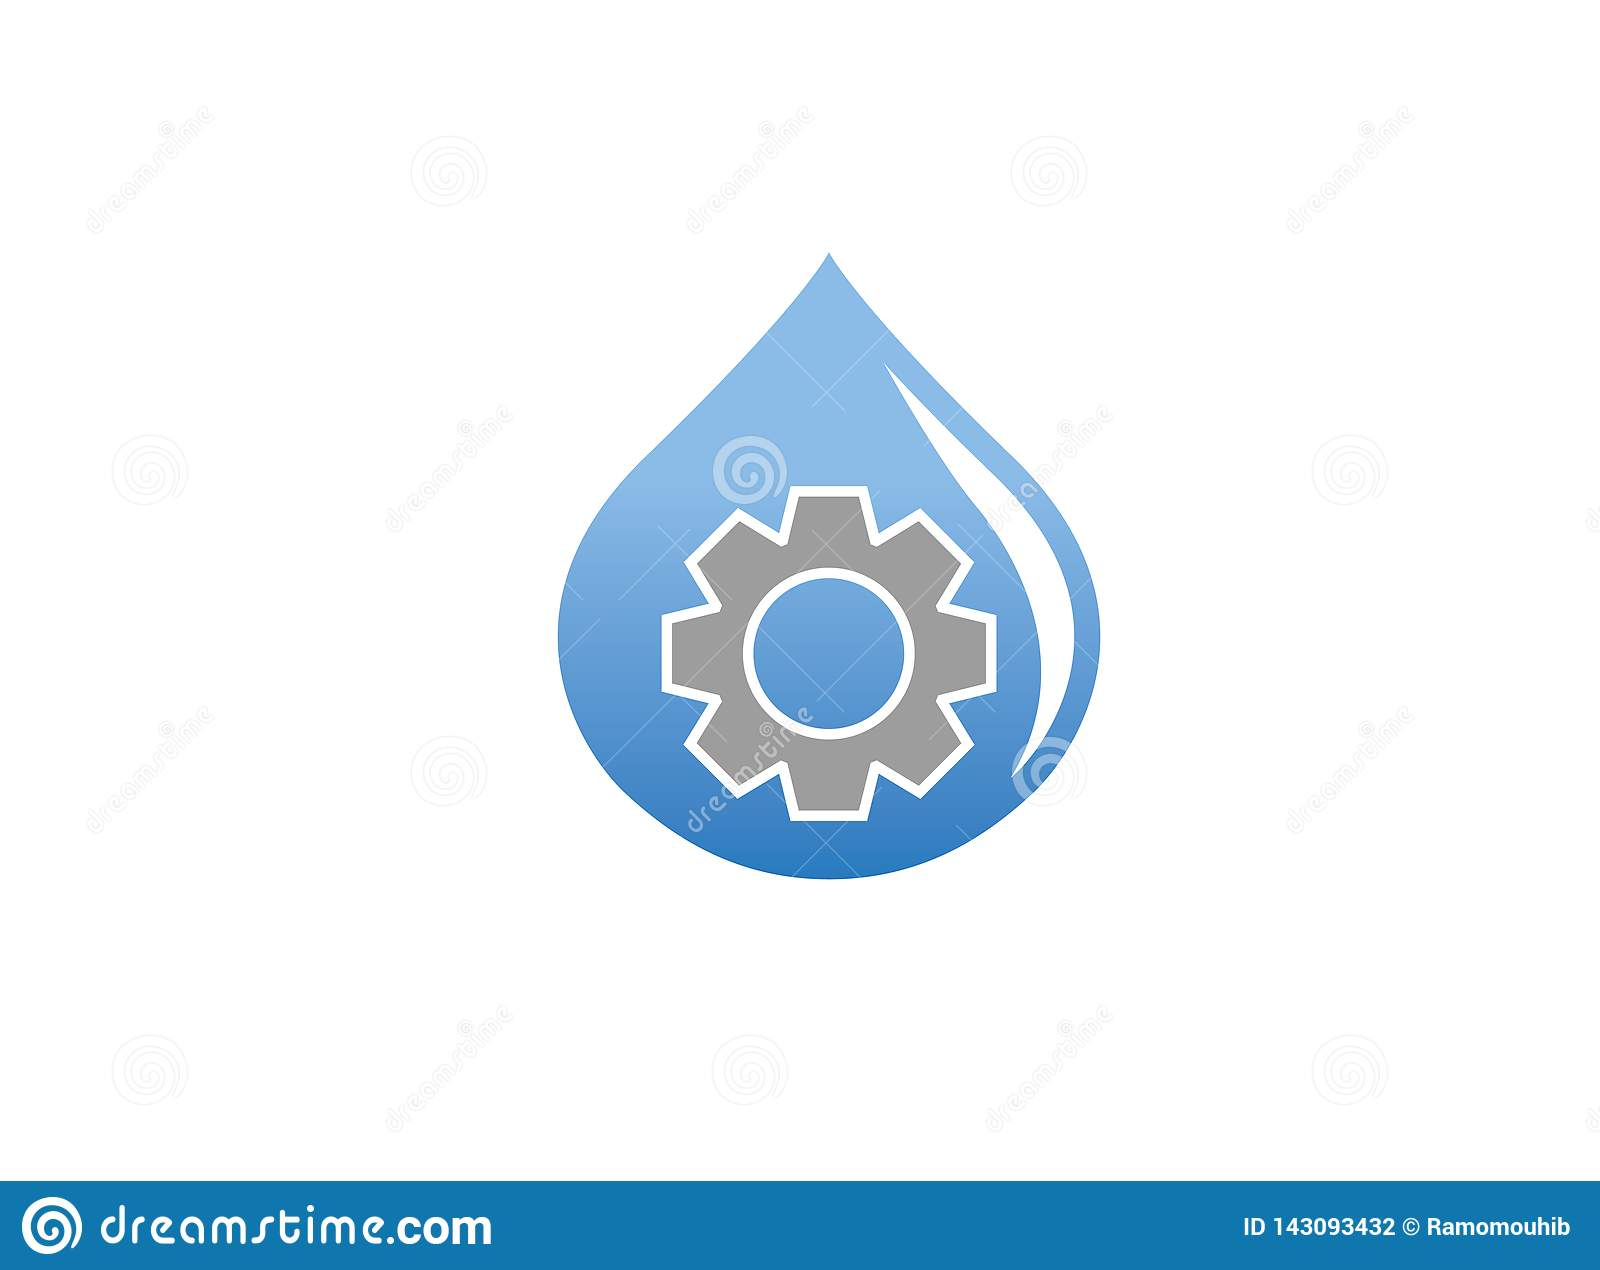 Pinion gear inside a drop of water for logo design